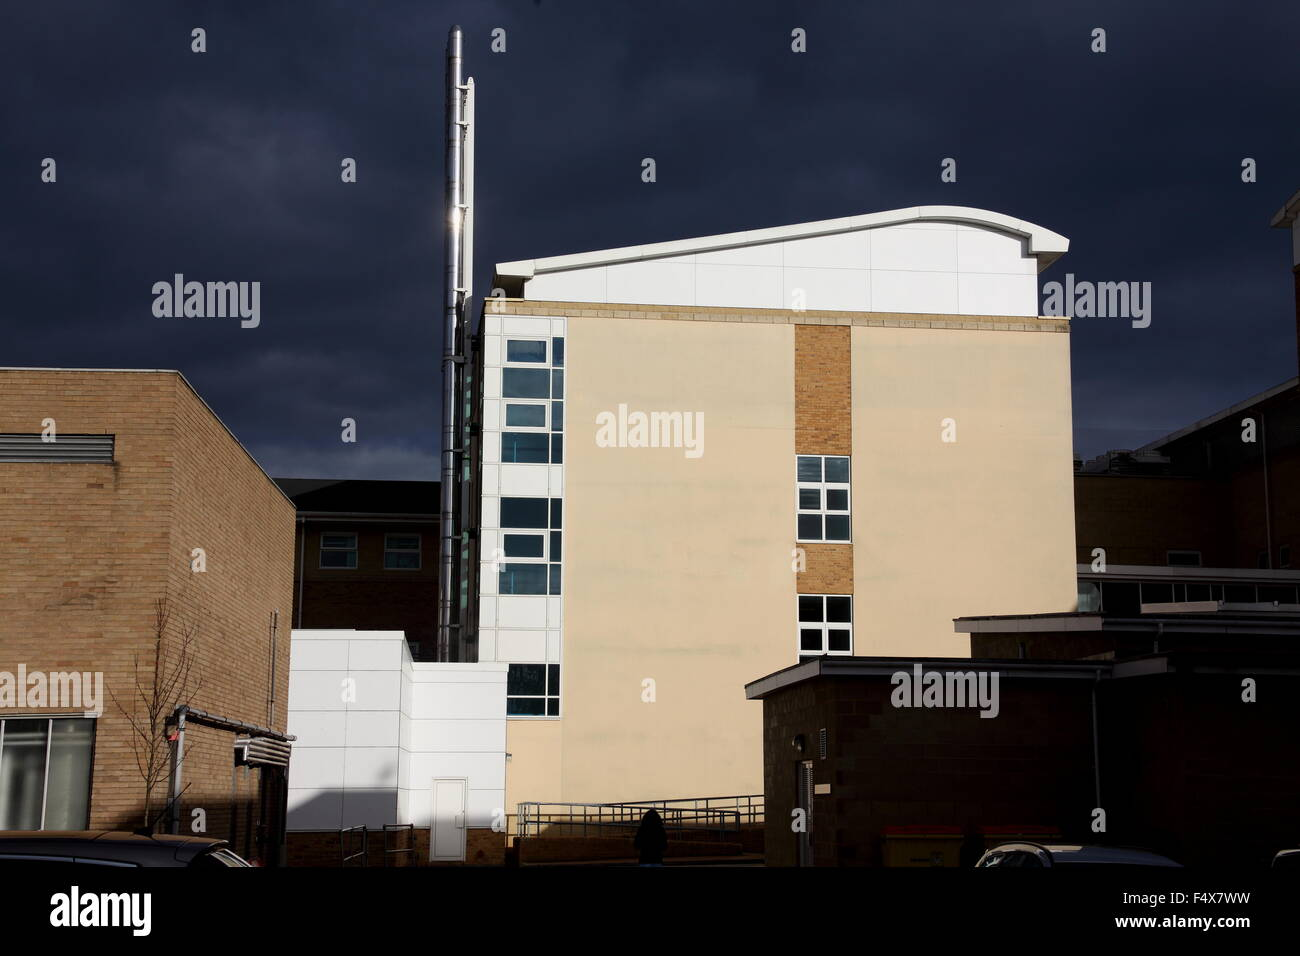 A starkly contrasting picture of a bright building in sunlight and a very dark and ominous background. - Stock Image